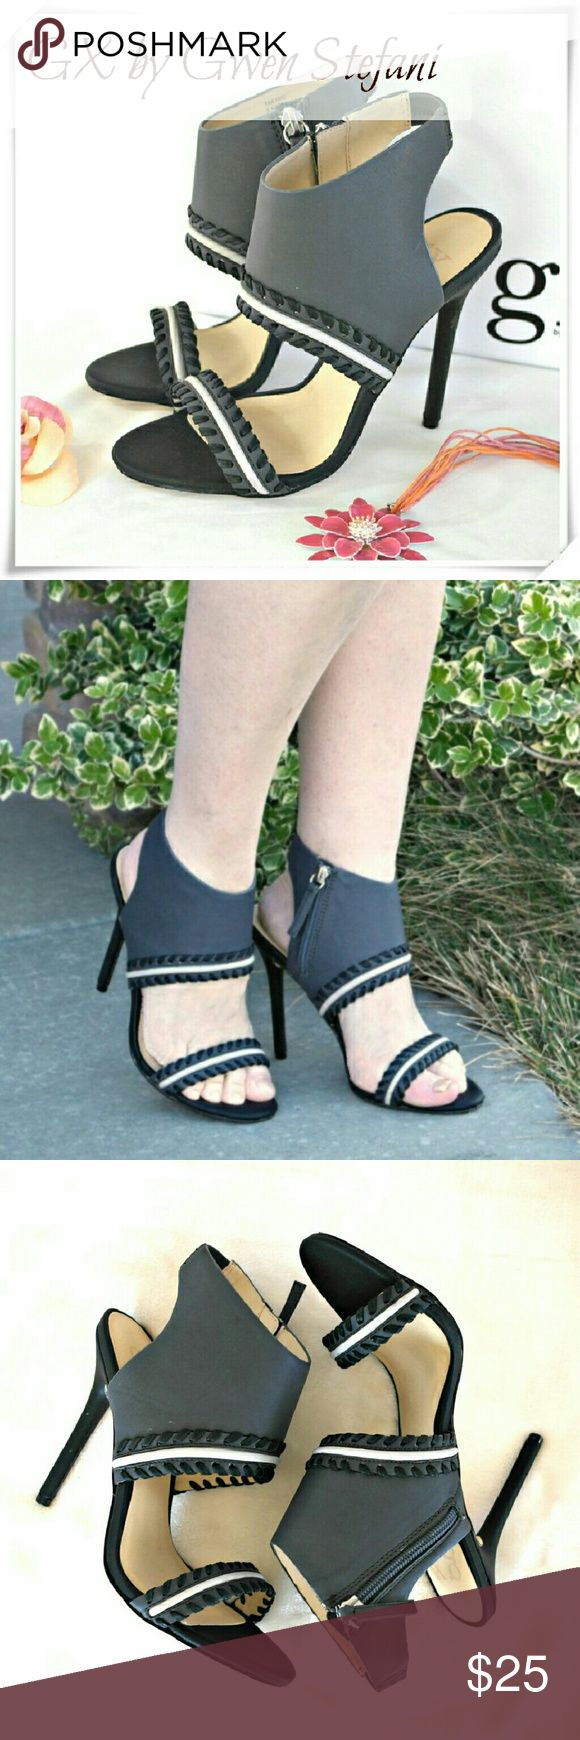 """HP☘GX by Gwen Stefani Takako heels sandals Soft faux leather sandals with whipstitch detail. Side zip clouser, goring at the back of the anckle strap. Dark gray - slate - color.  Details: heel 4-1/2"""", TTS, but runs a bit narrow, the shoe will fit medium to narrow ankles. The color is dark gray, not like on the cover picture, closer to stock pictures.  Please use only ✔OFFER  button for all price negotiations. GX by Gwen Stefani Shoes Sandals"""